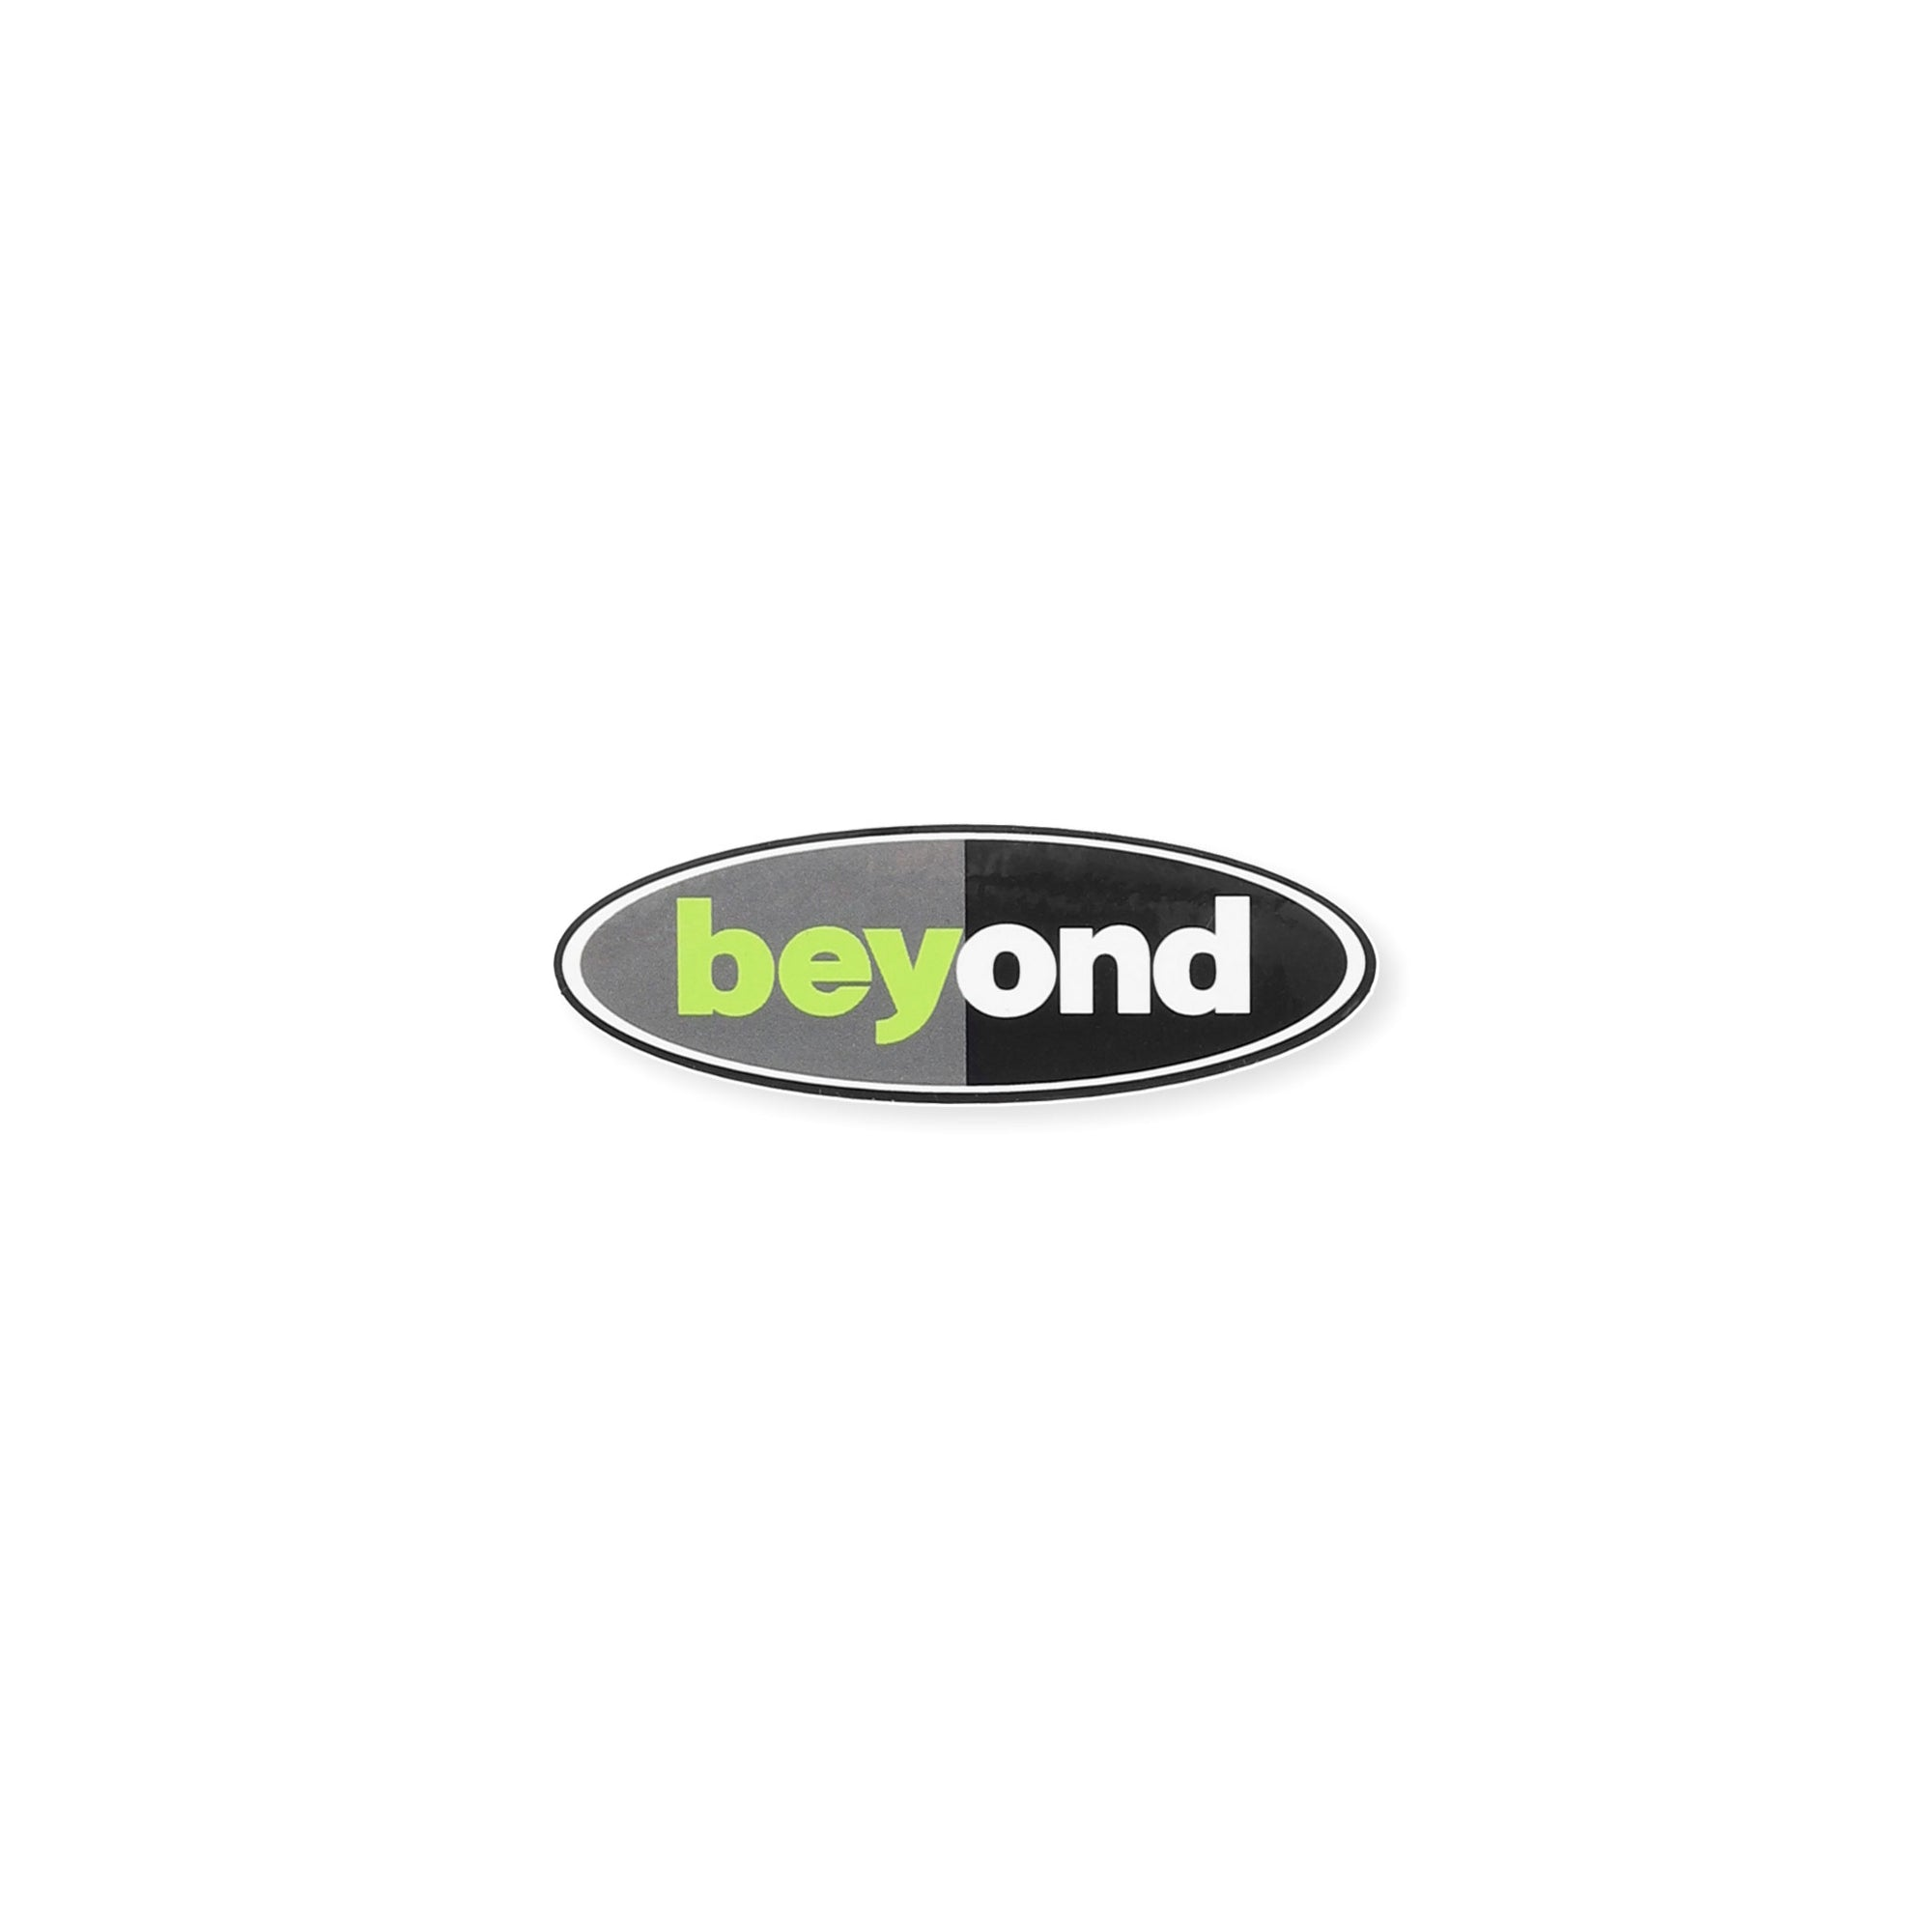 Beyond 95 Sticker Product Photo #1